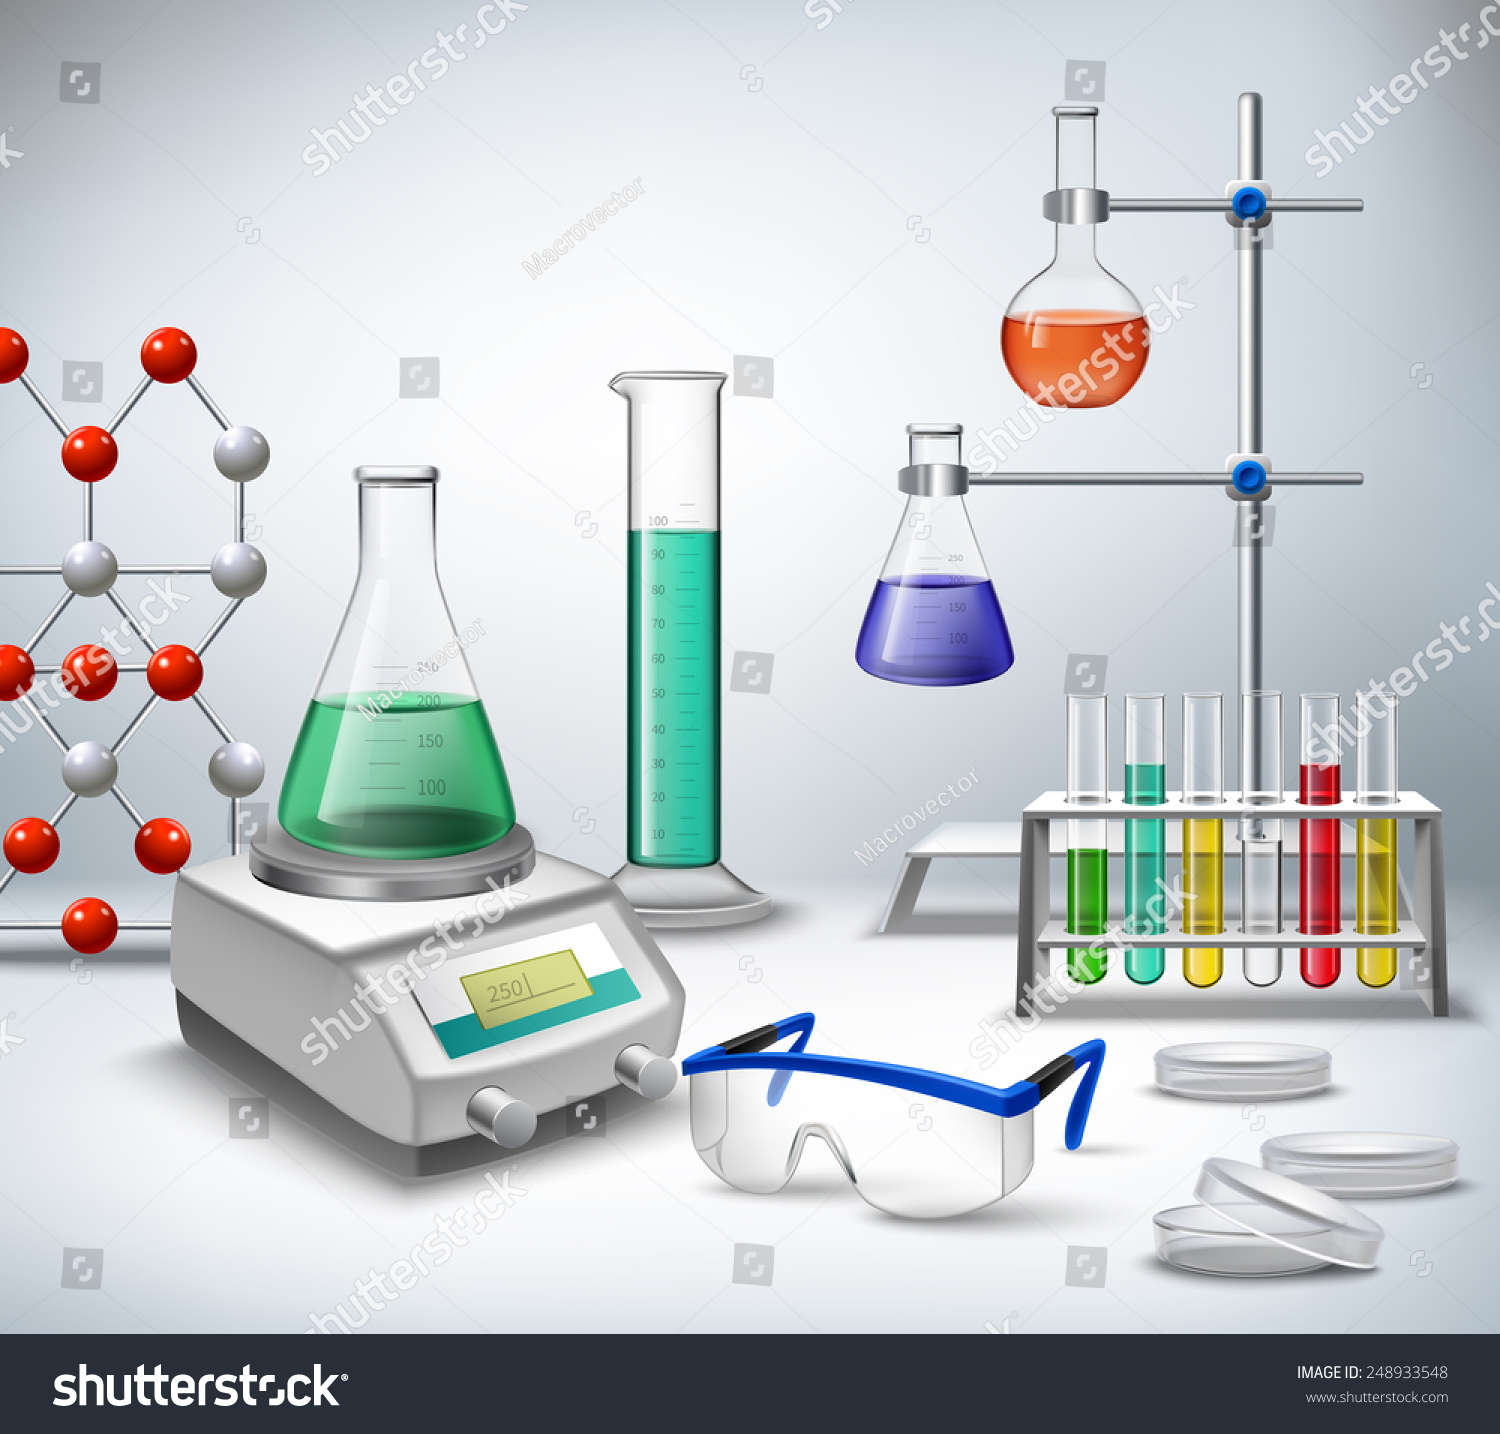 importance of laboratory apparatus